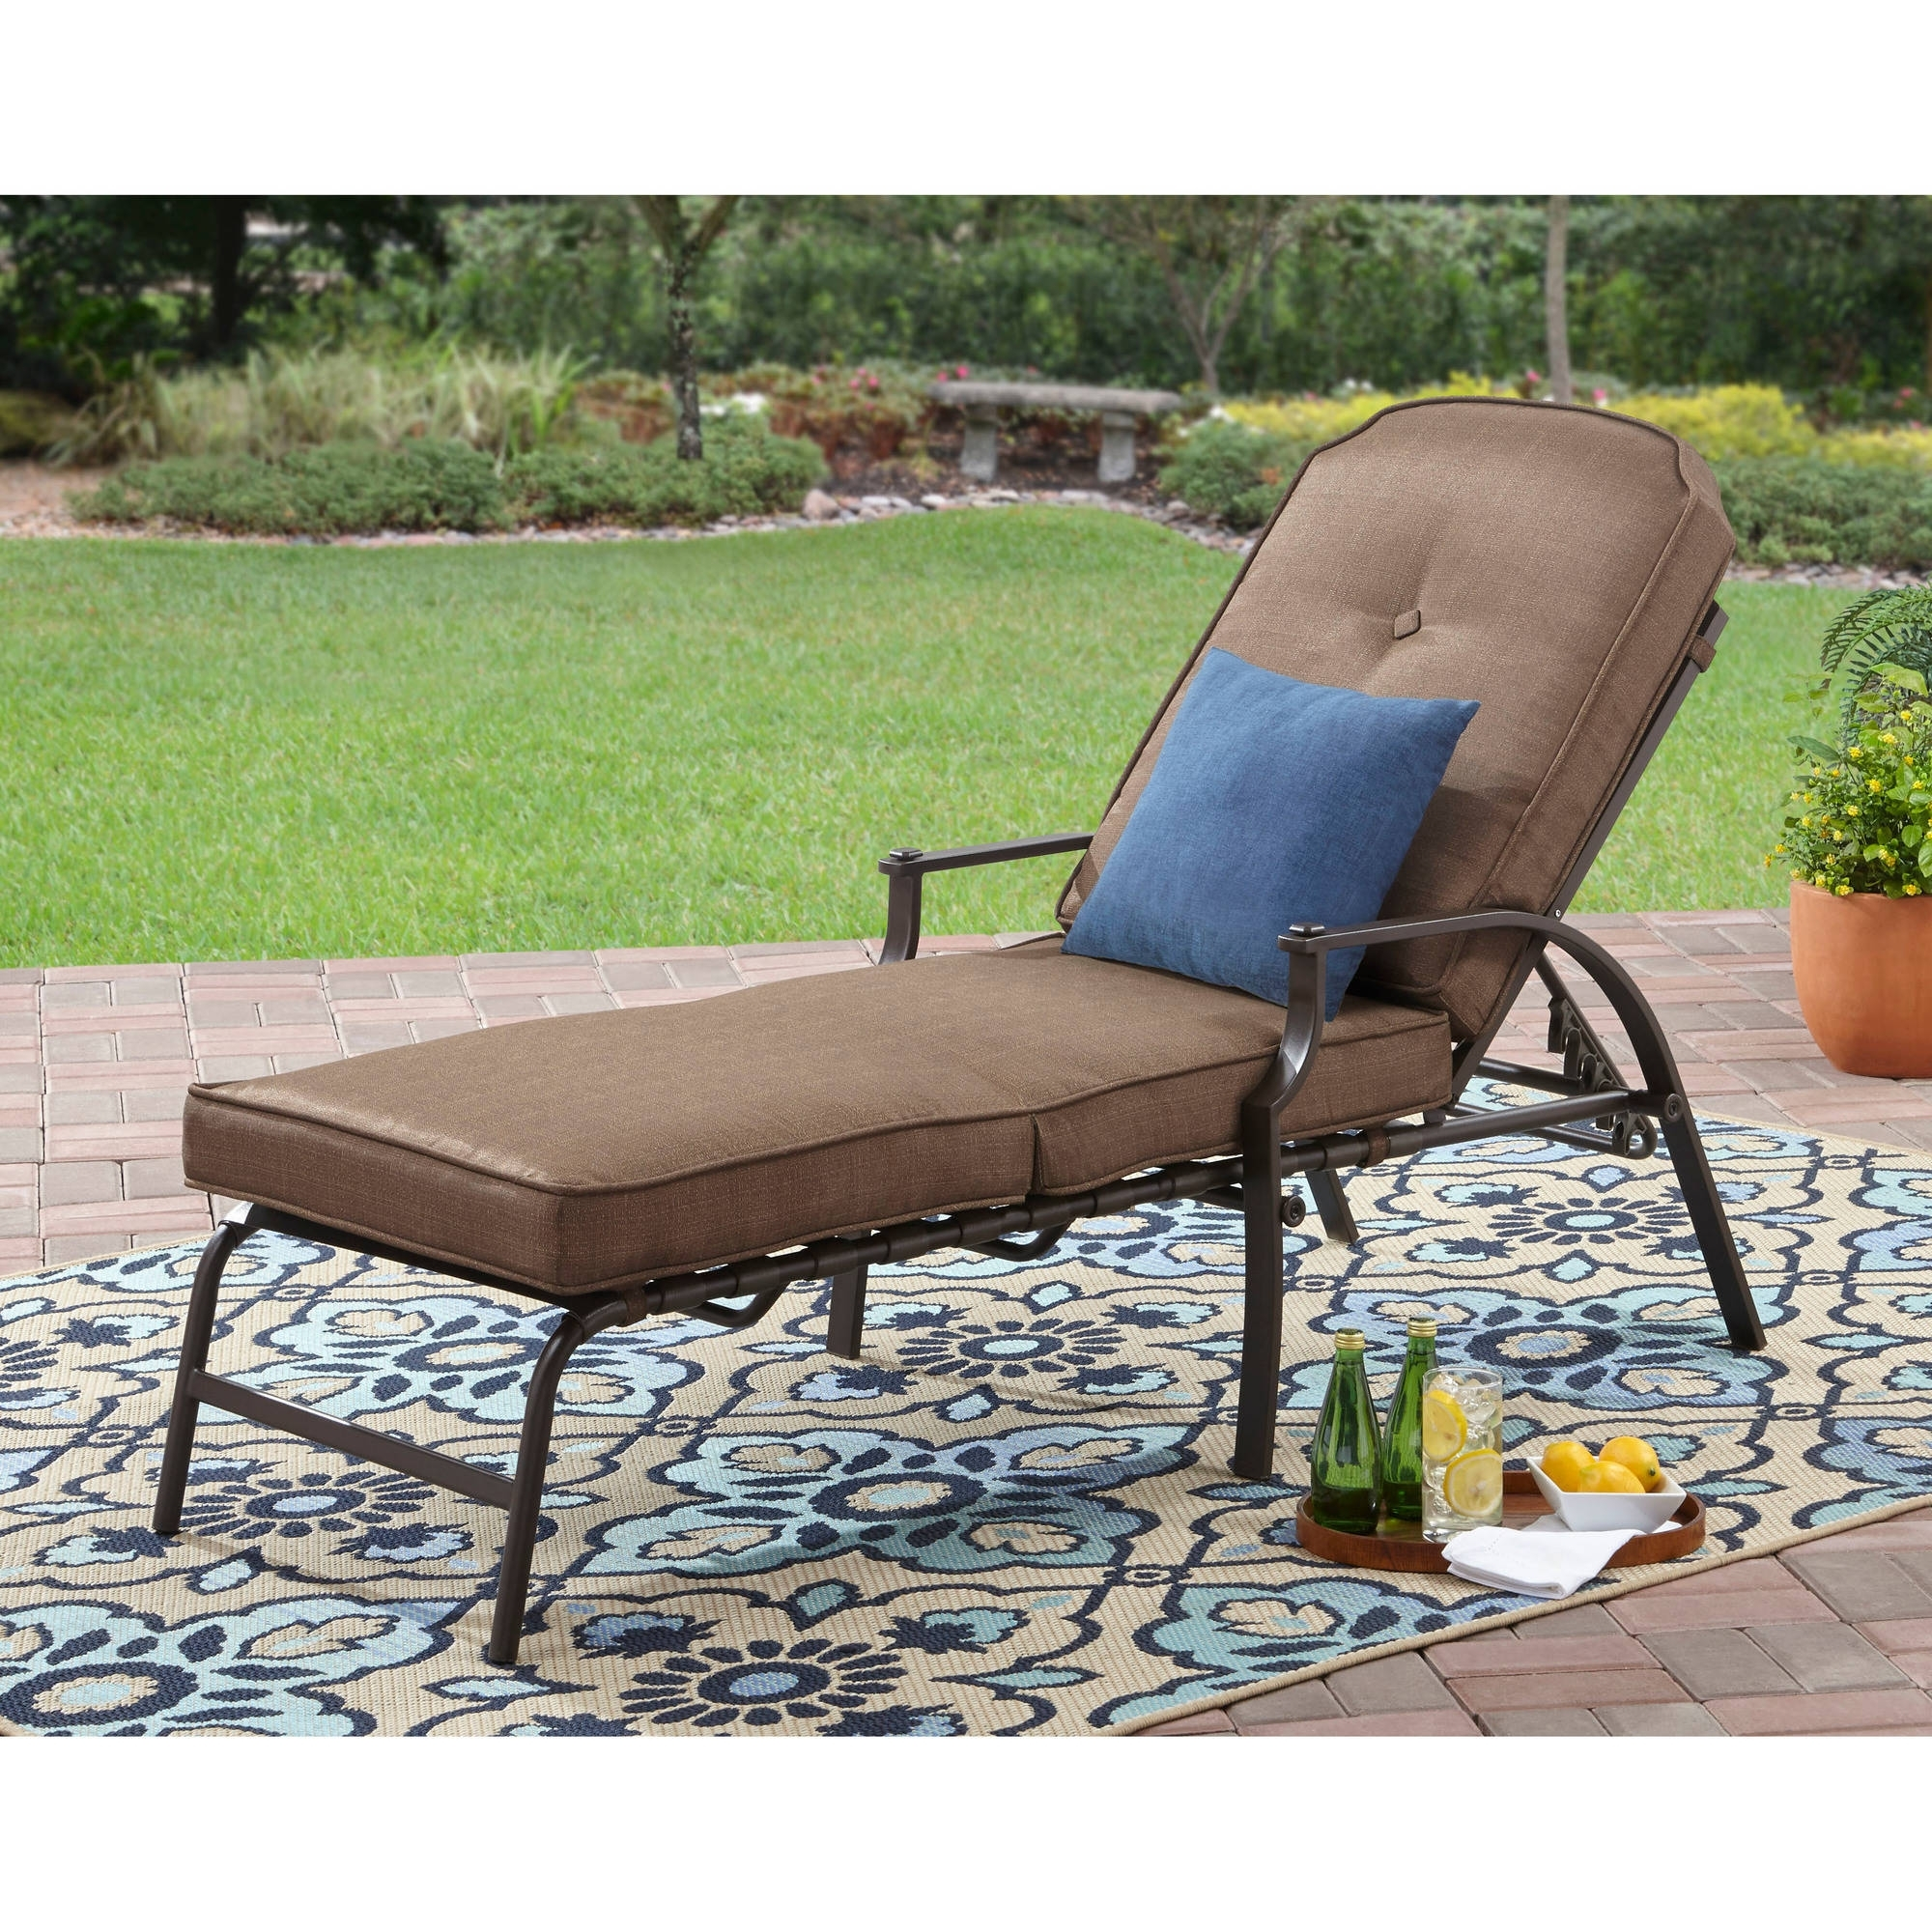 Walmart Outdoor Chaise Lounges Throughout Recent Mainstays Wentworth Chaise Lounge – Walmart (View 12 of 15)